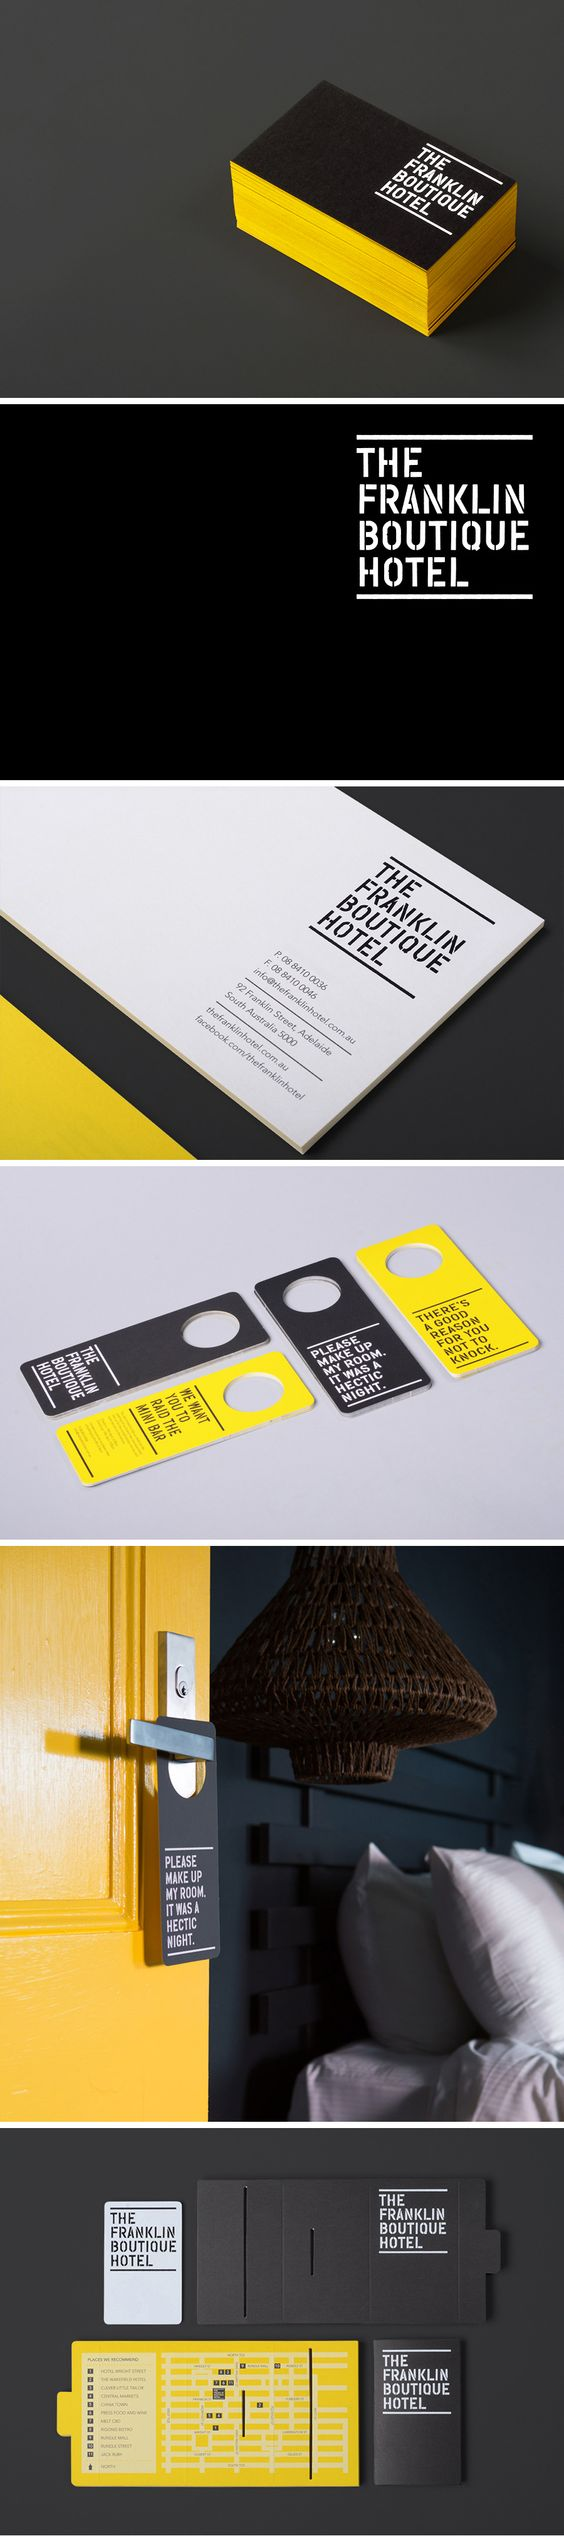 dans-ta-pub-creation-brand-identity-compilation-13